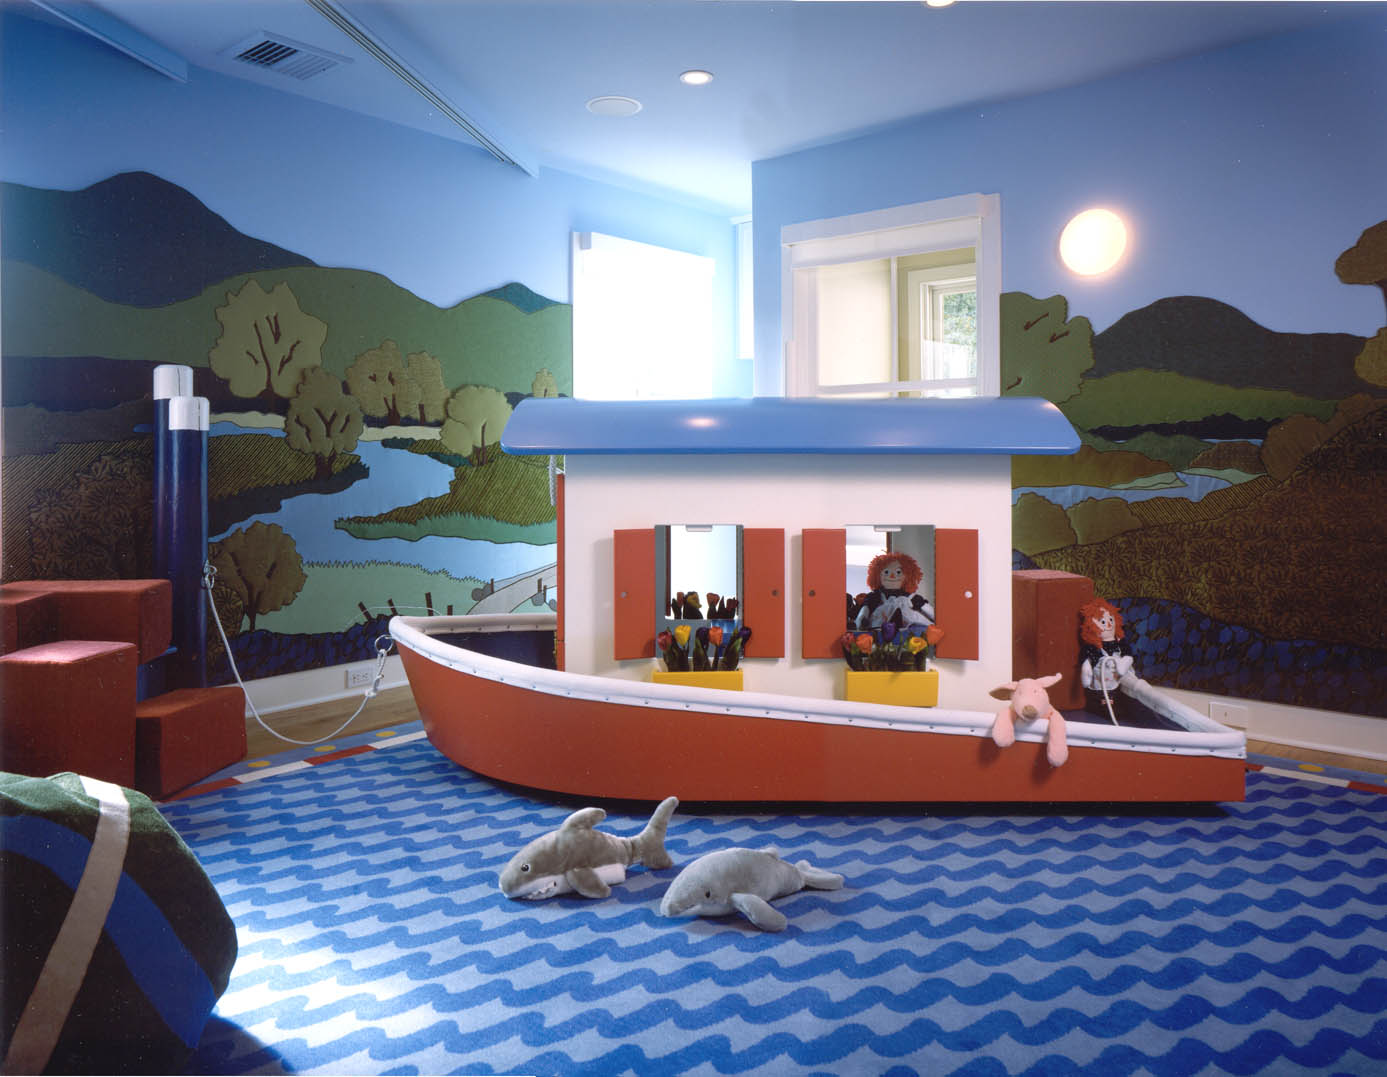 Perfect Boat Interior Design Ideas With Twining Design Seascape Childs Room Boat Wall Murals